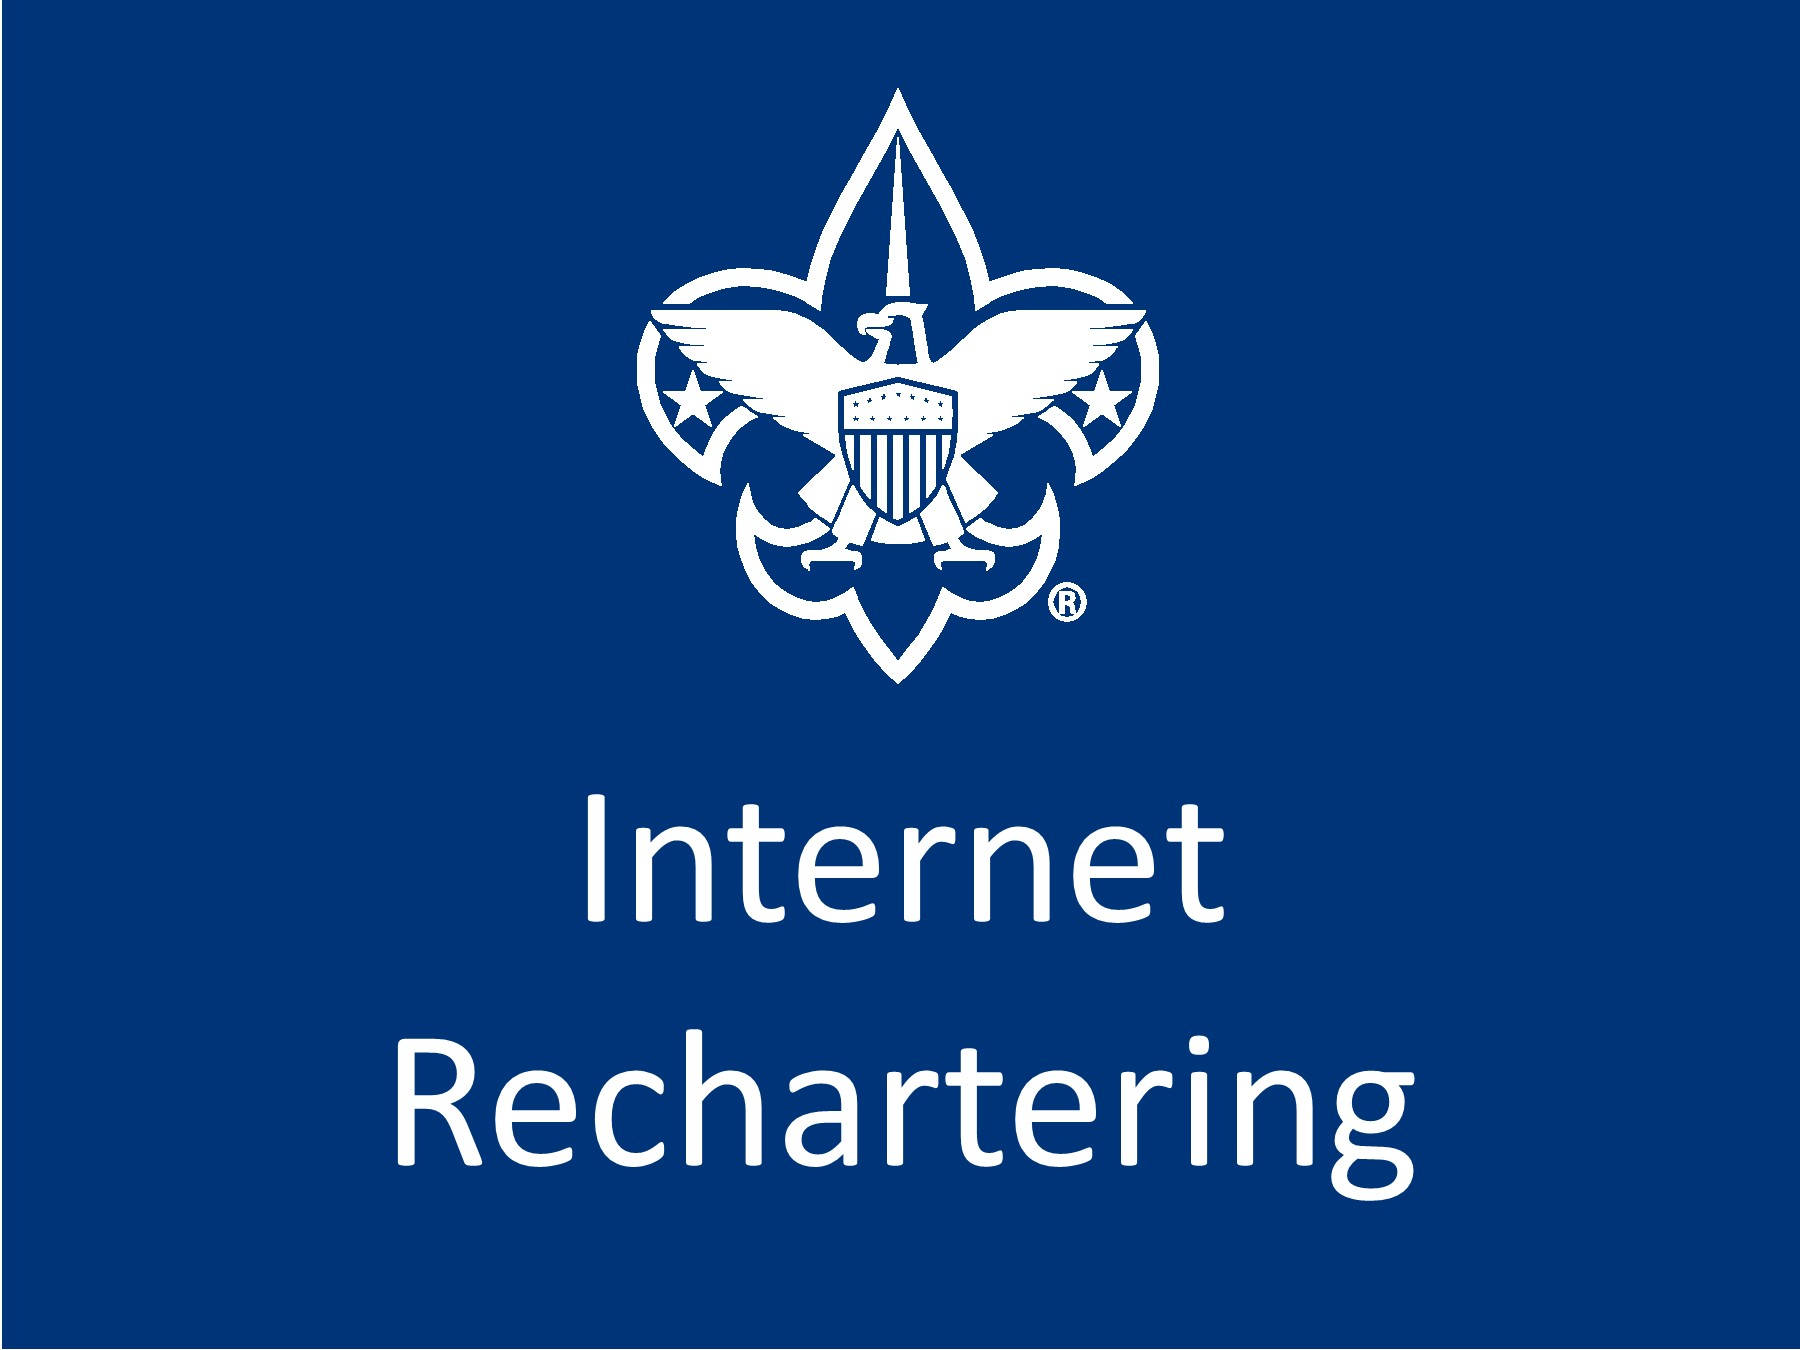 BSA Internet Rechartering